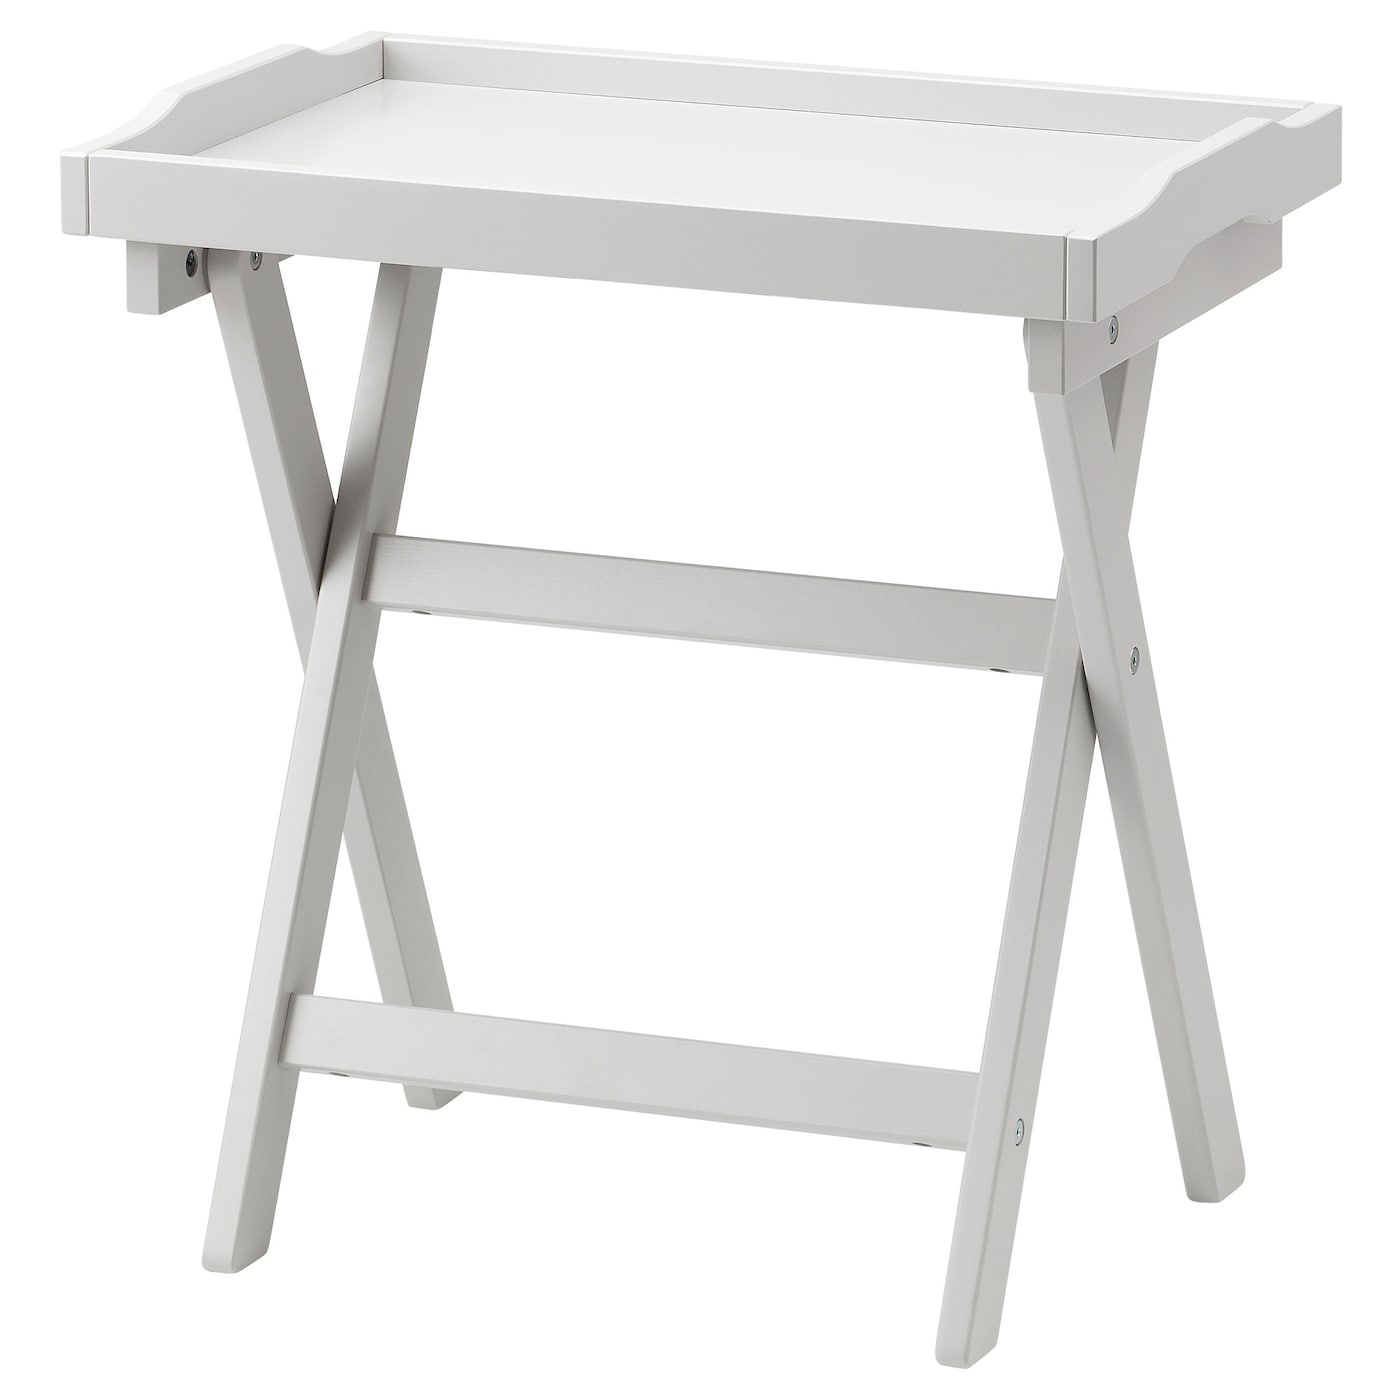 Maryd tray table grey 58x38x58 cm ikea for Ikea green side table